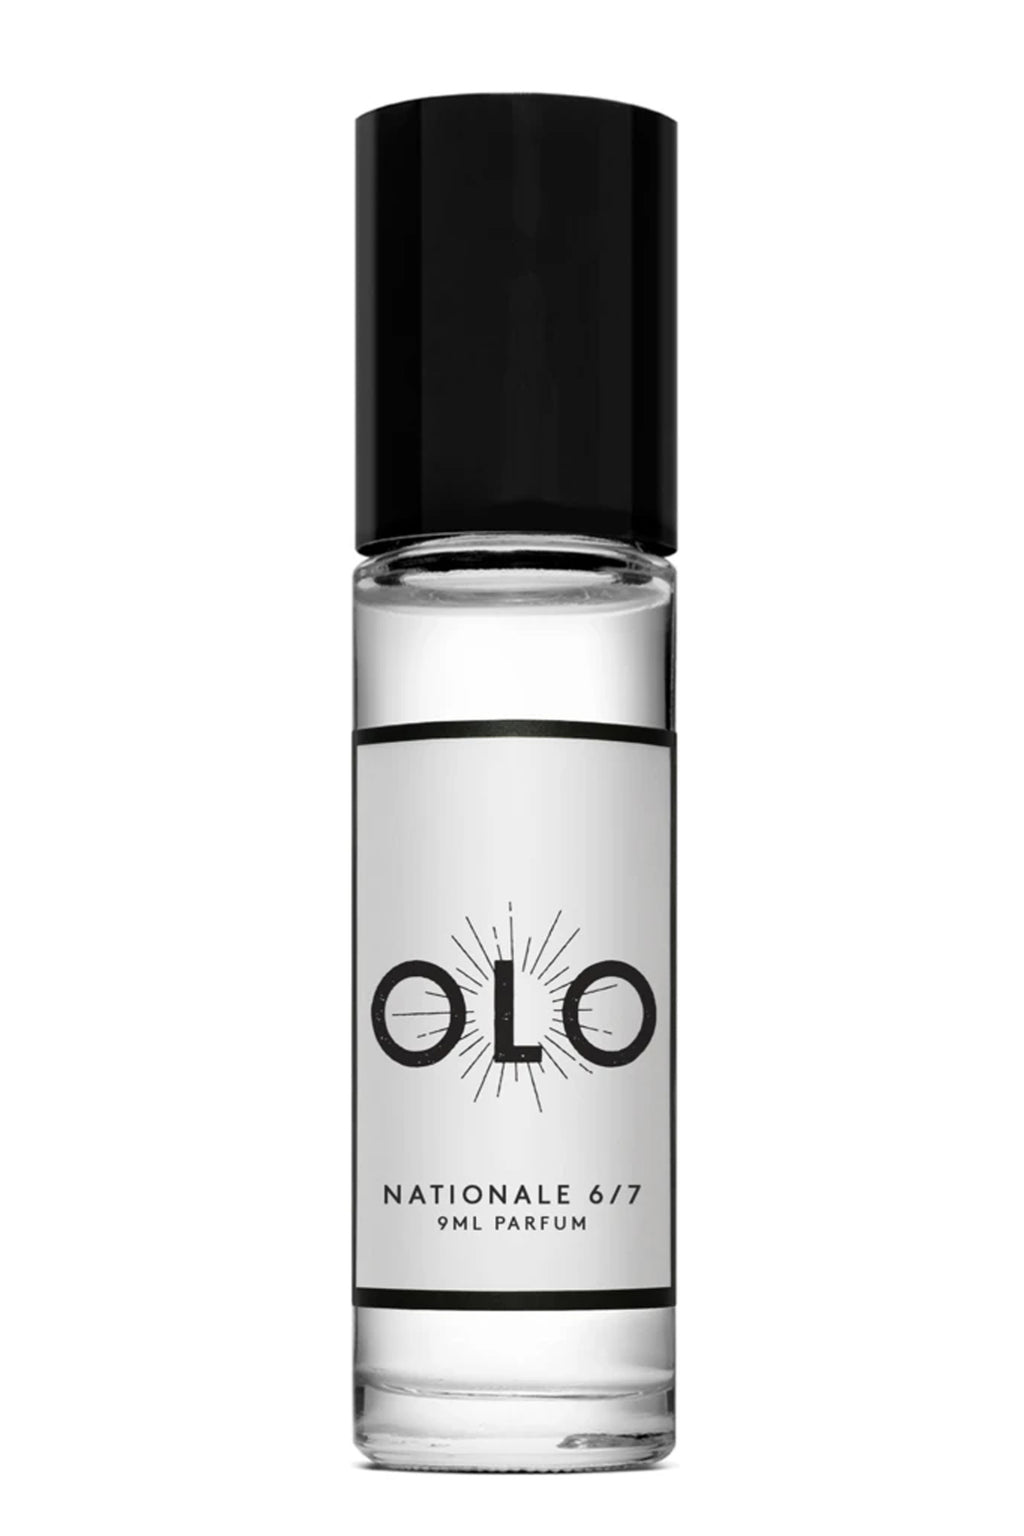 Olo Nationale 6/7 Parfum